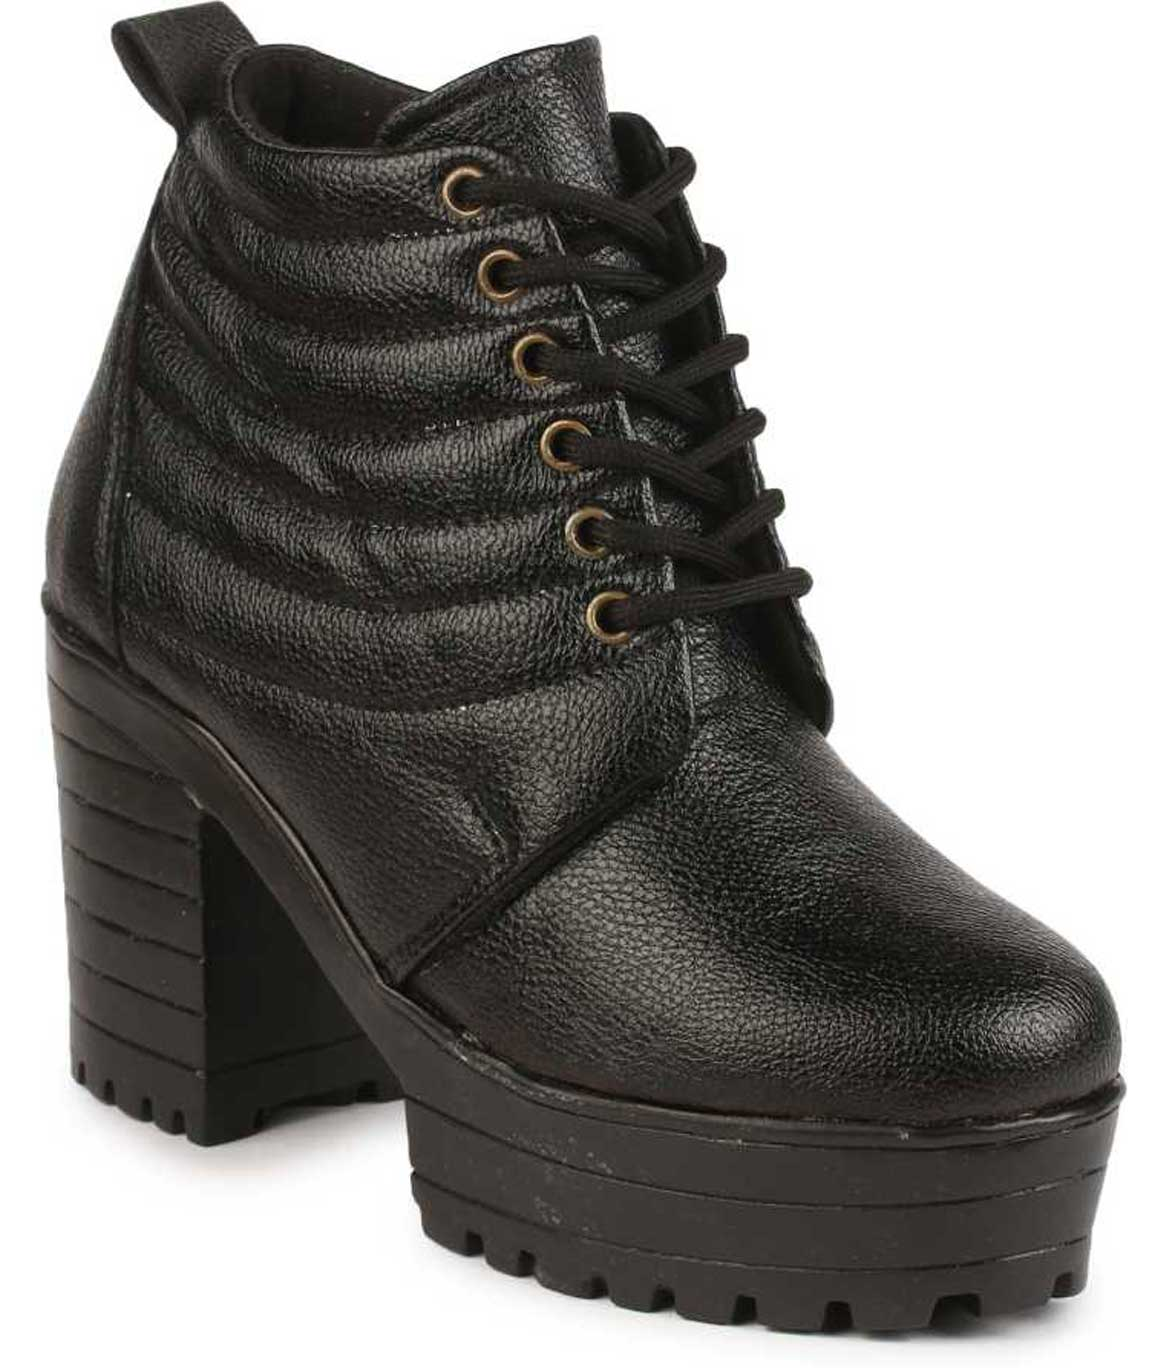 DARK BLACK BOOTS FOR WOMEN